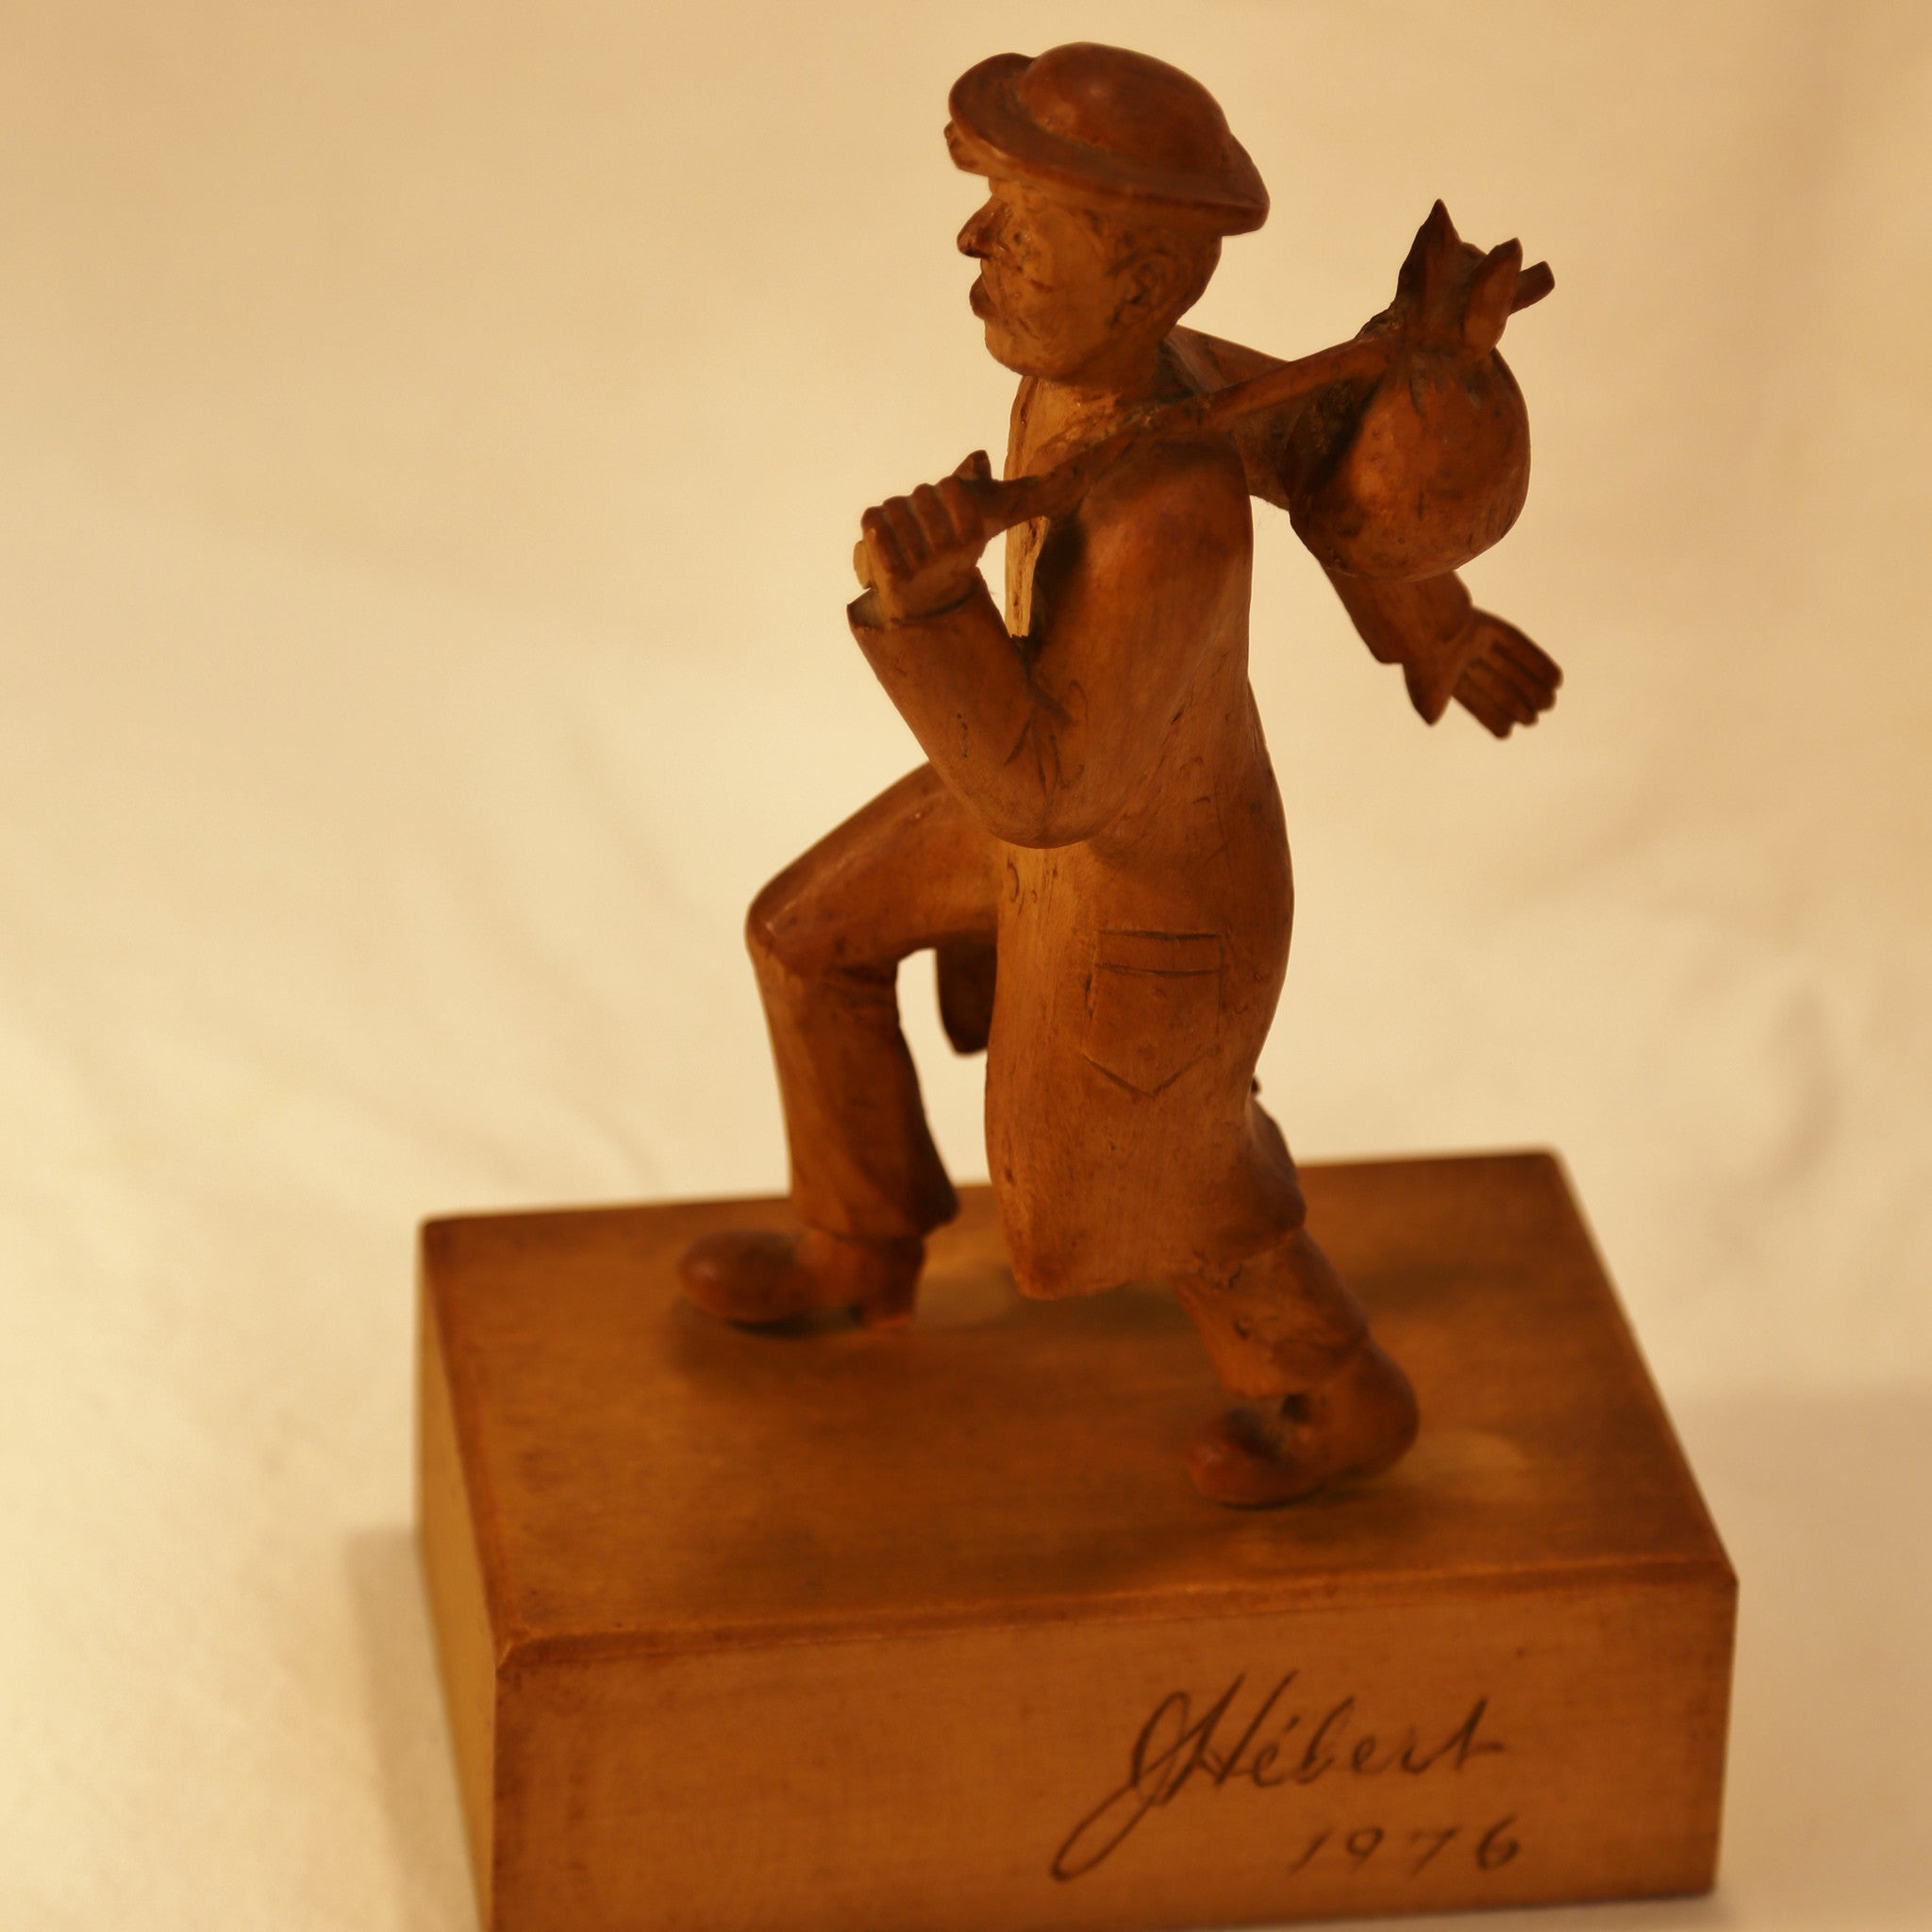 Walking hobo wood carving